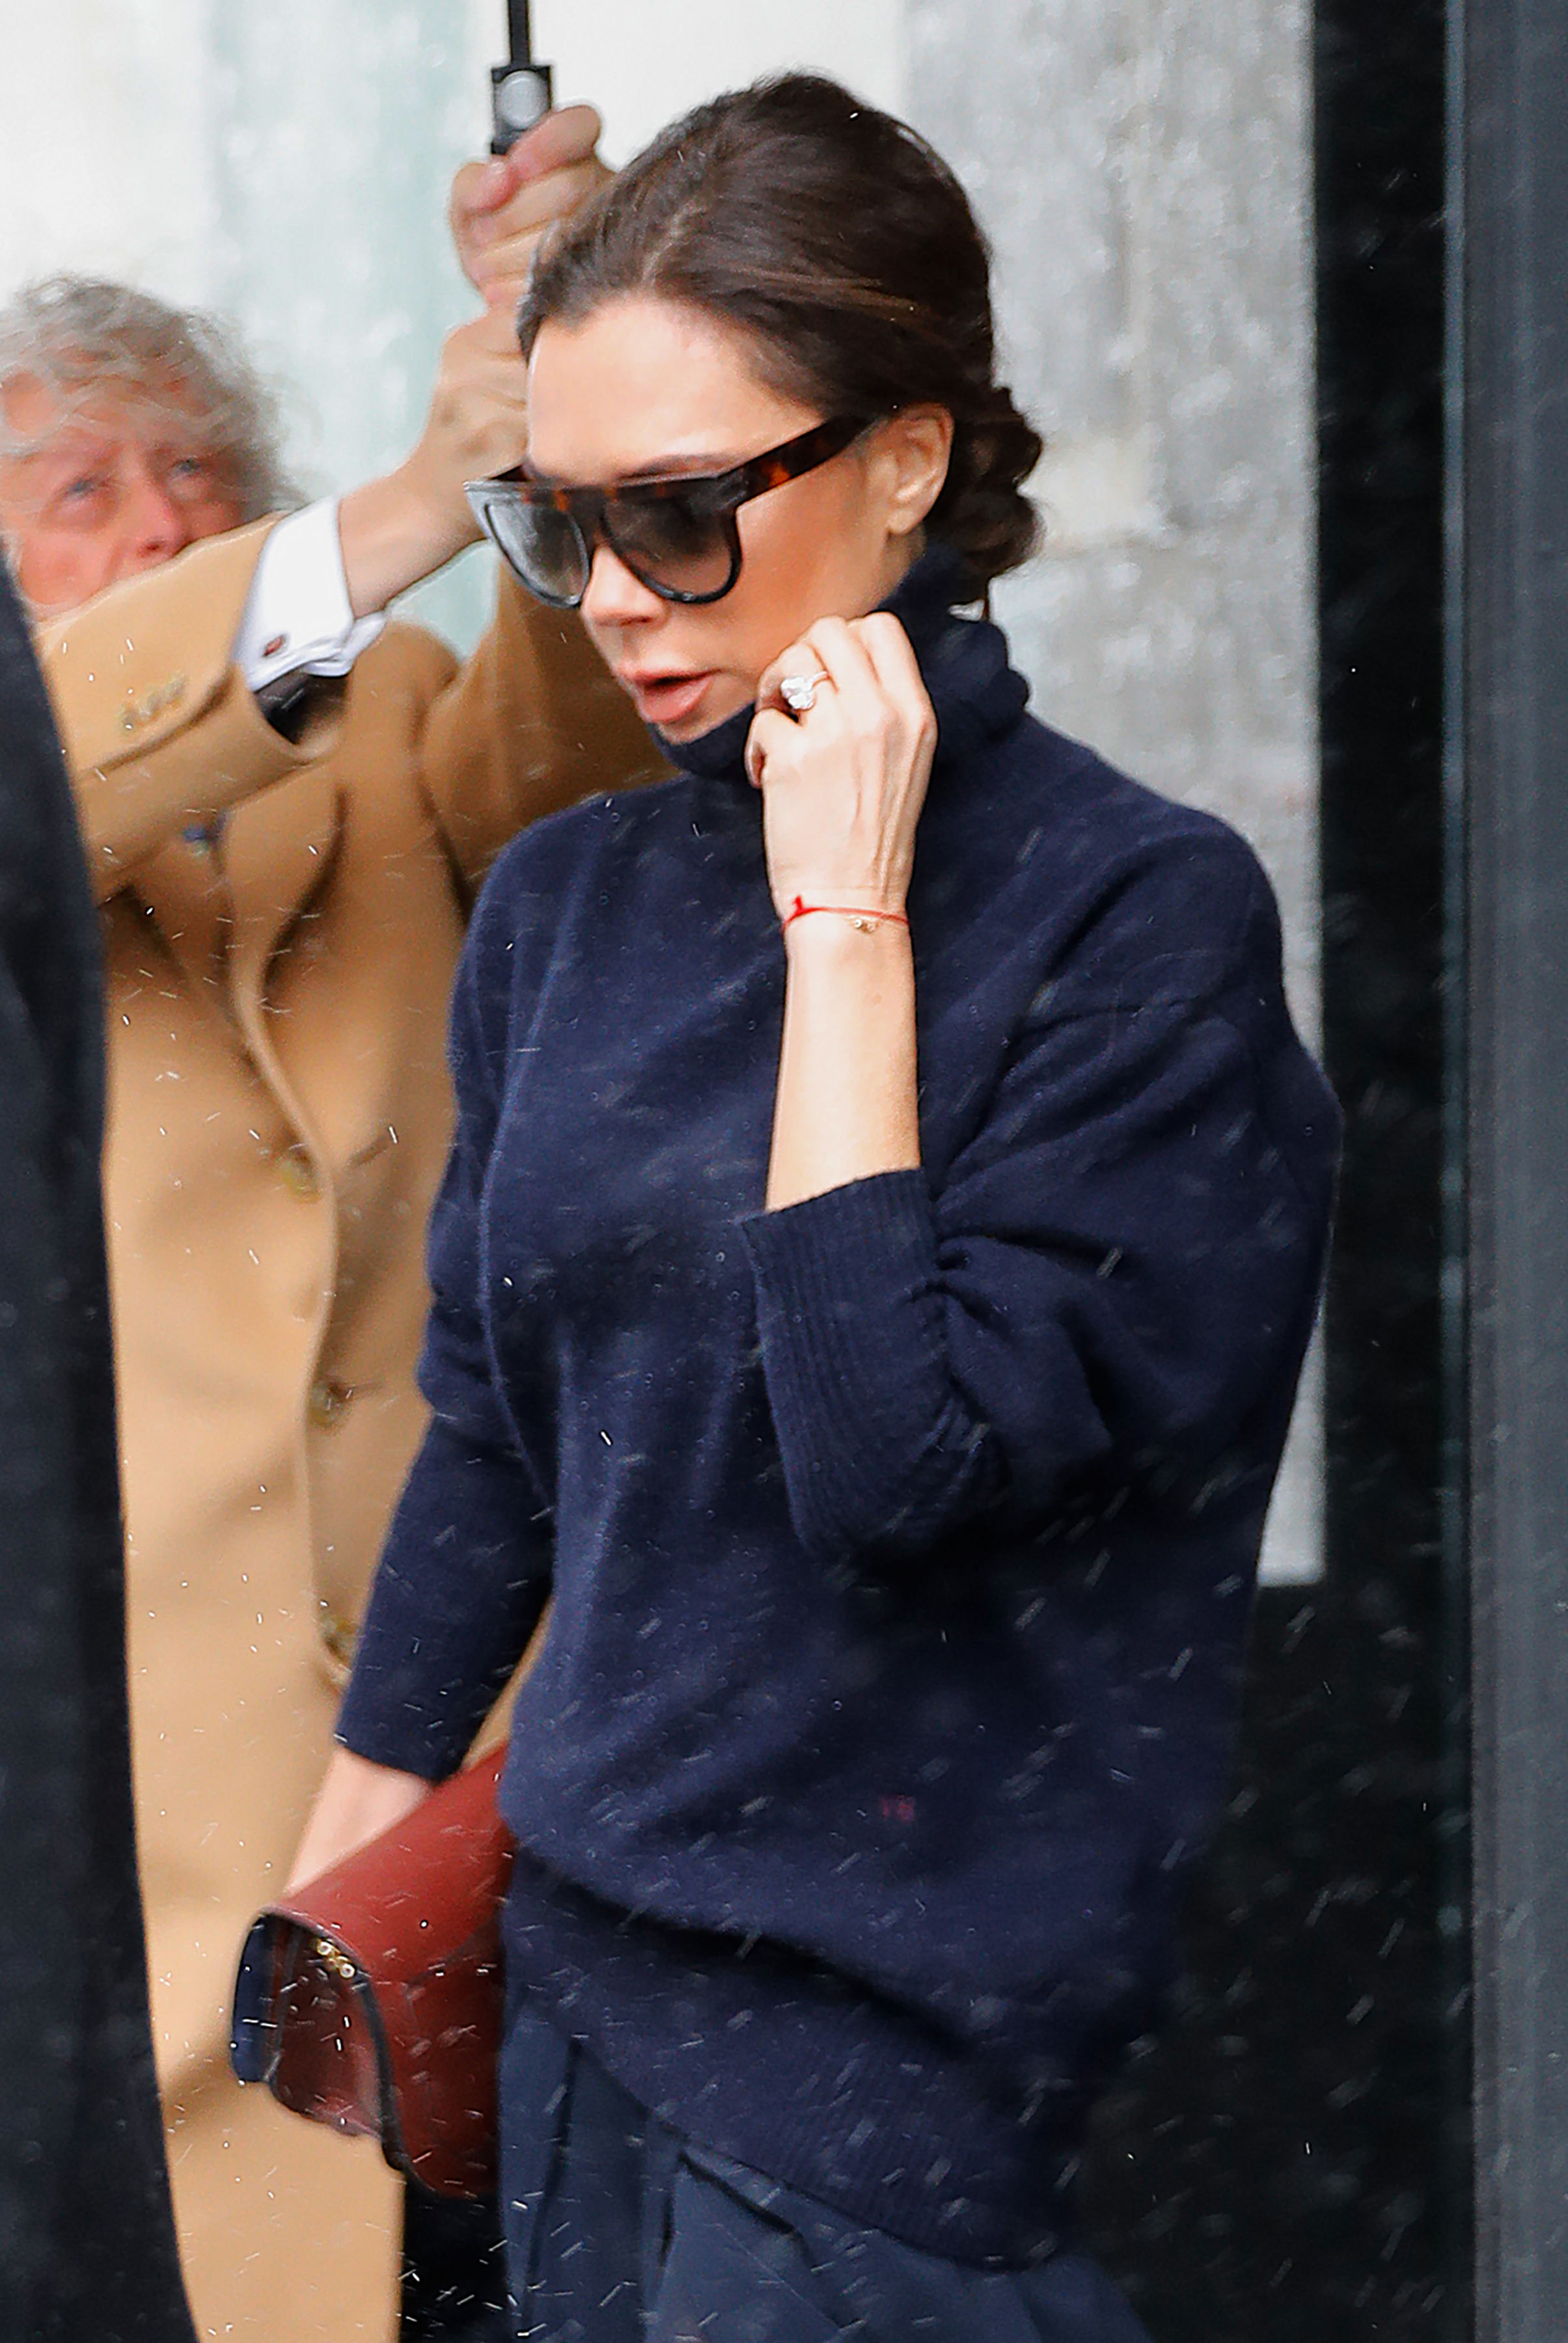 Victoria Beckham heads out in another navy outfit when out in New York <P> Pictured: Victoria Beckham <B>Ref: SPL1461995  140317  </B><BR/> Picture by: Splash News <BR/> </P><P> <B>Splash News and Pictures</B><BR/> Los Angeles:310-821-2666<BR/> New York:212-619-2666<BR/> London:870-934-2666<BR/> <span id=